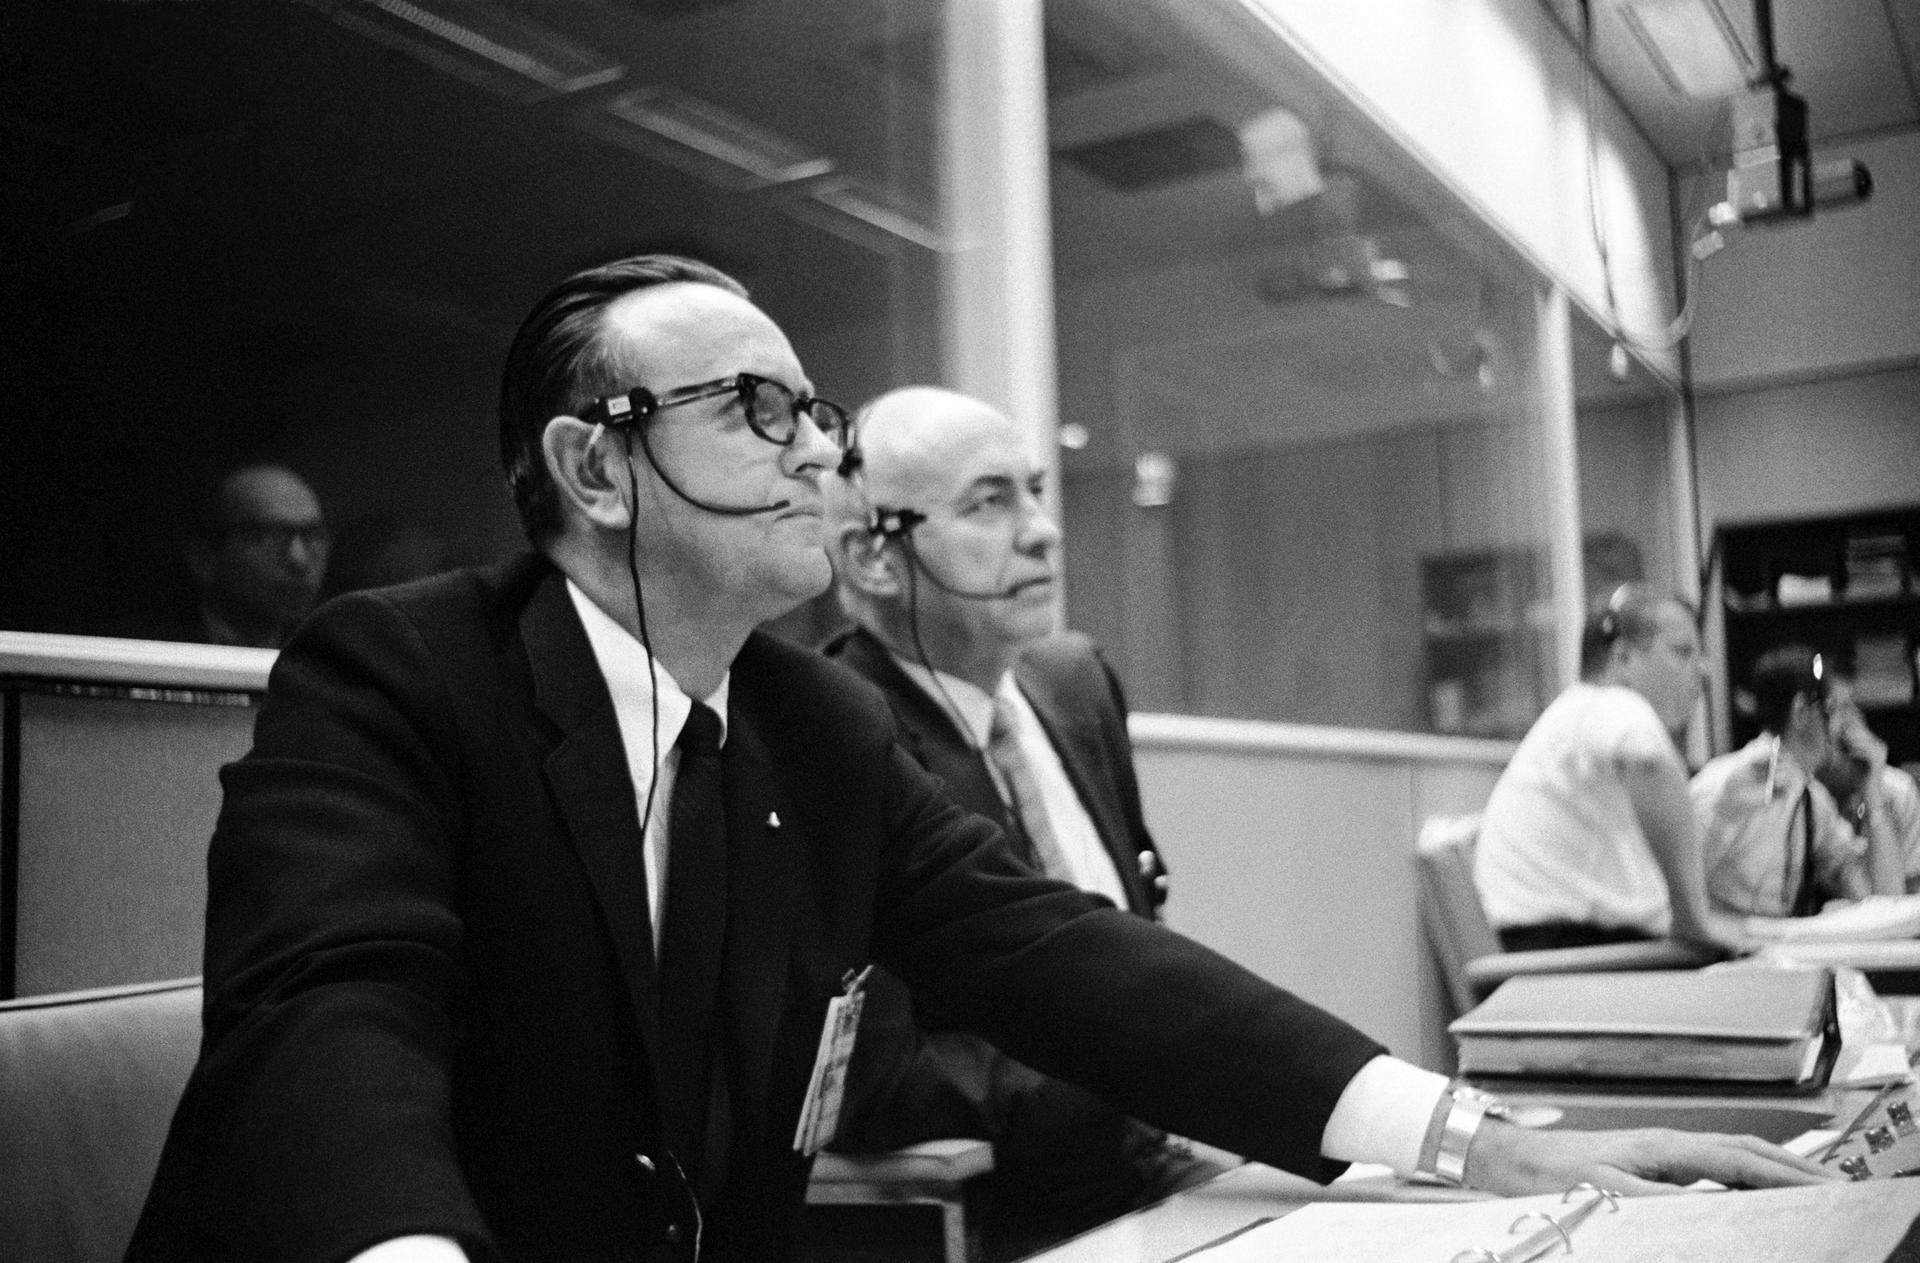 Christopher Kraft, director of flight operations, at his flight operations director console in the Mission Control Center in 1968.